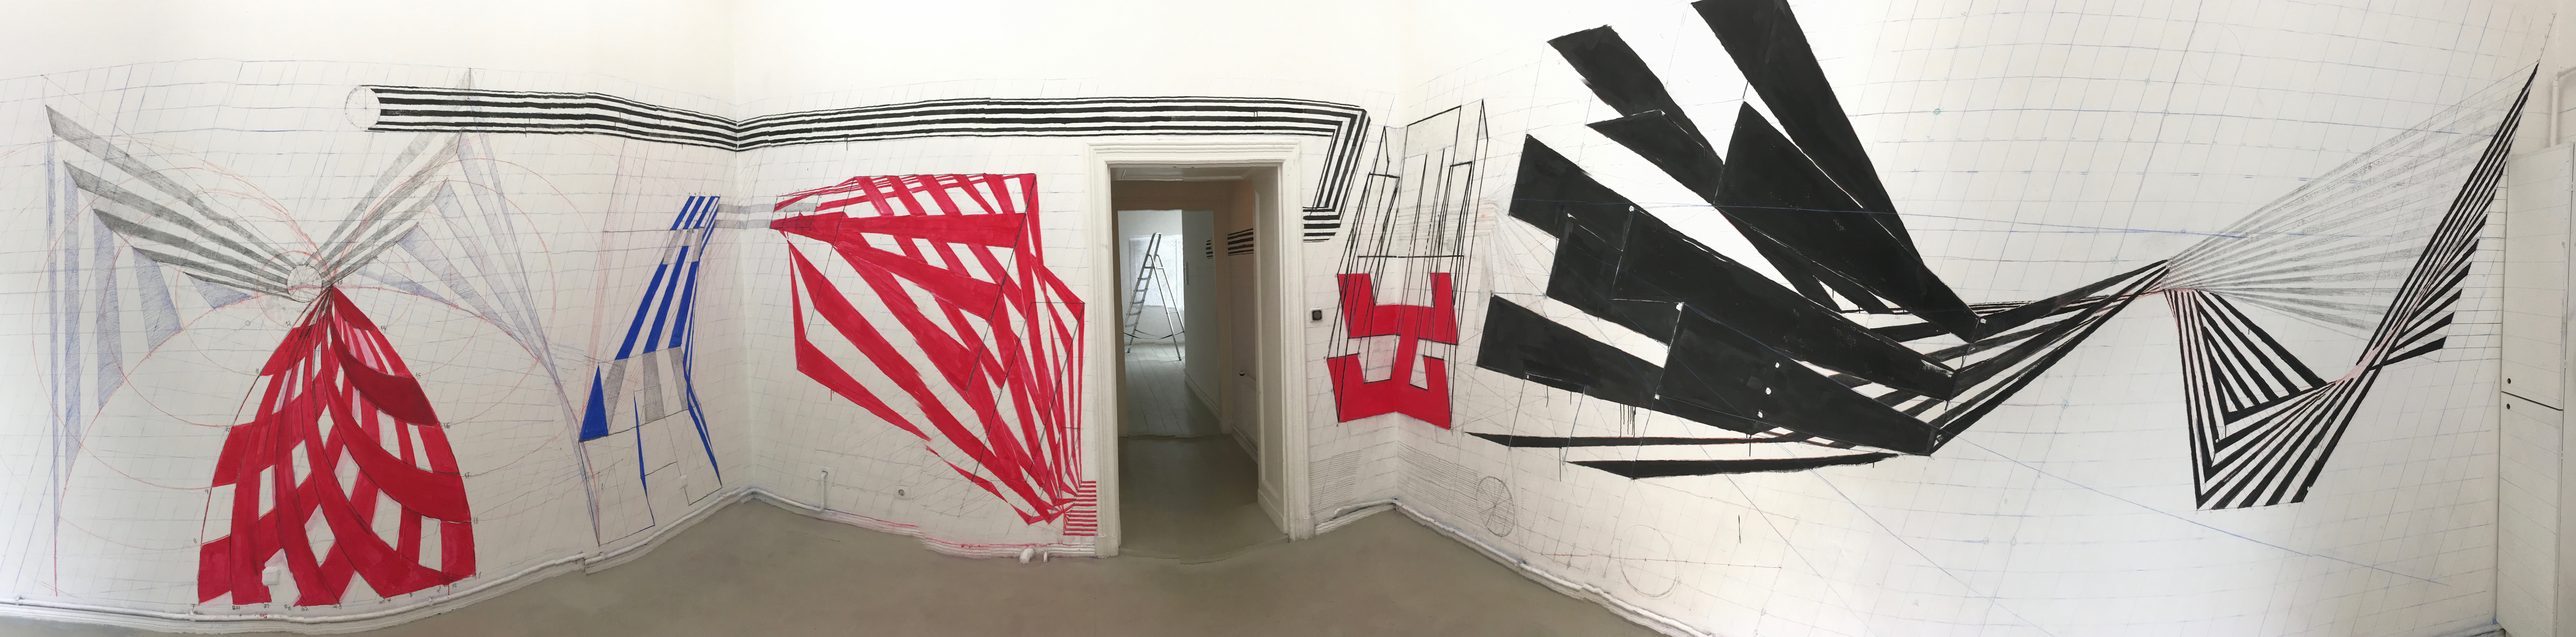 Photograph of red, black and blue linear patterns on a white wall by artist Ian Jehle, resident at GlogauAIR 2019